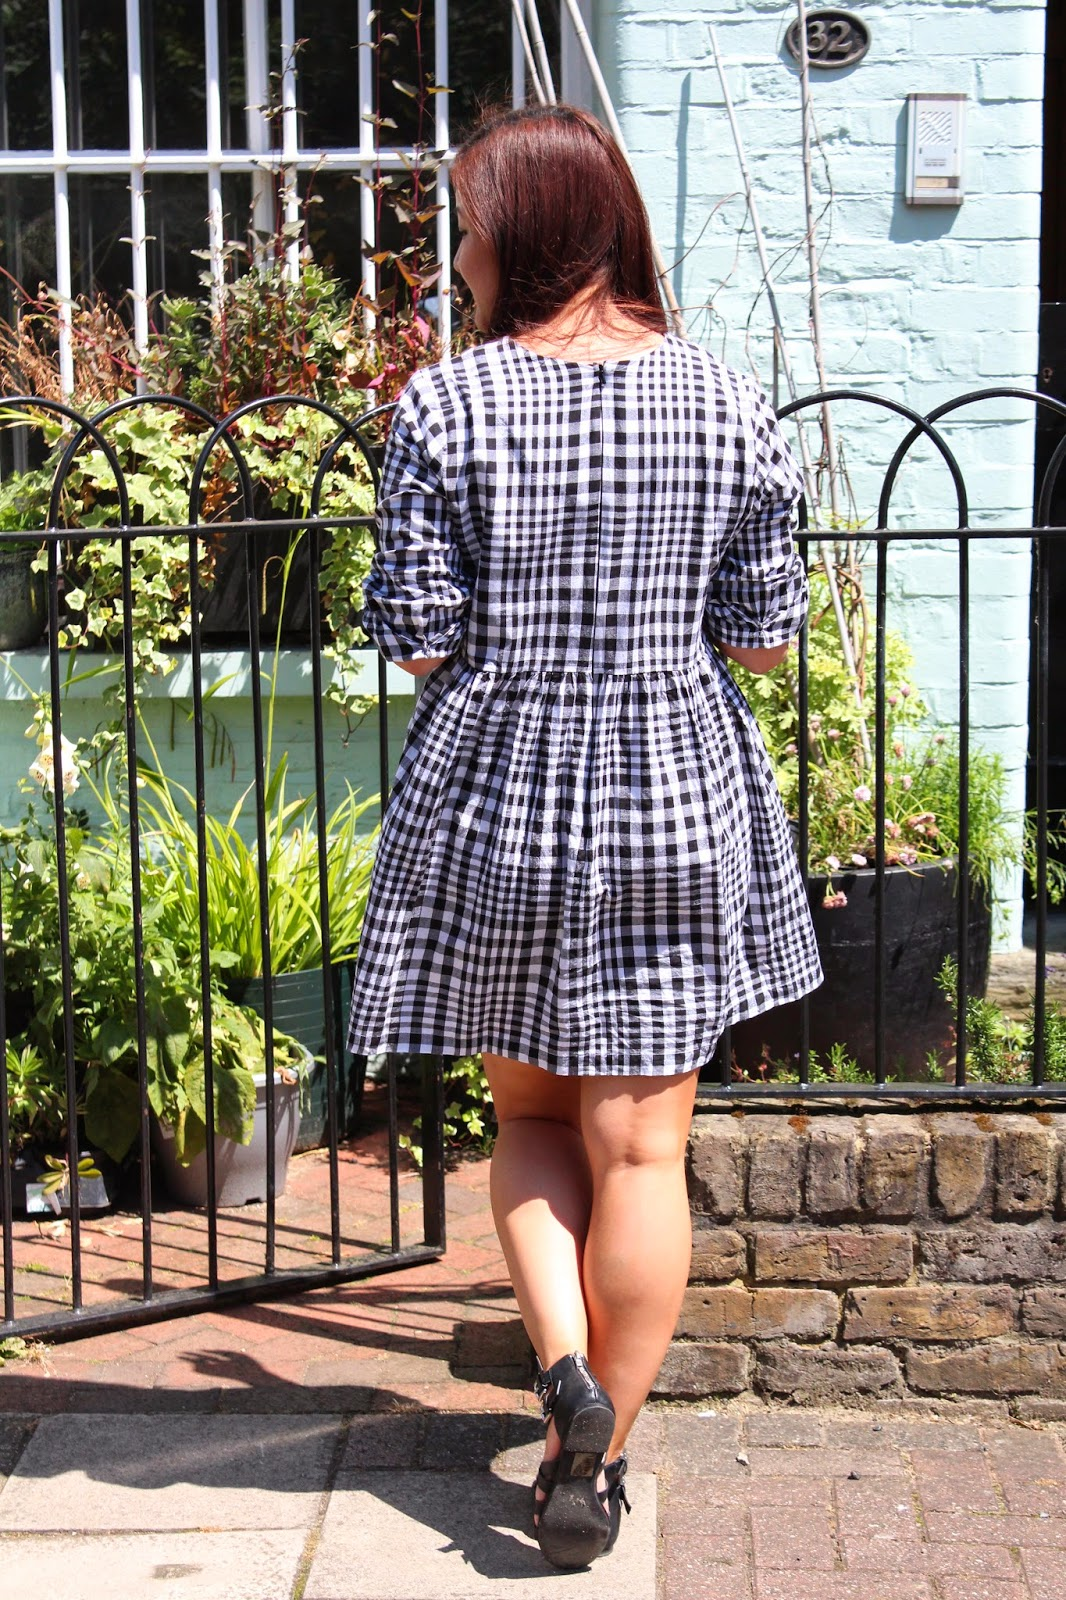 dupe of the whitepepper dress